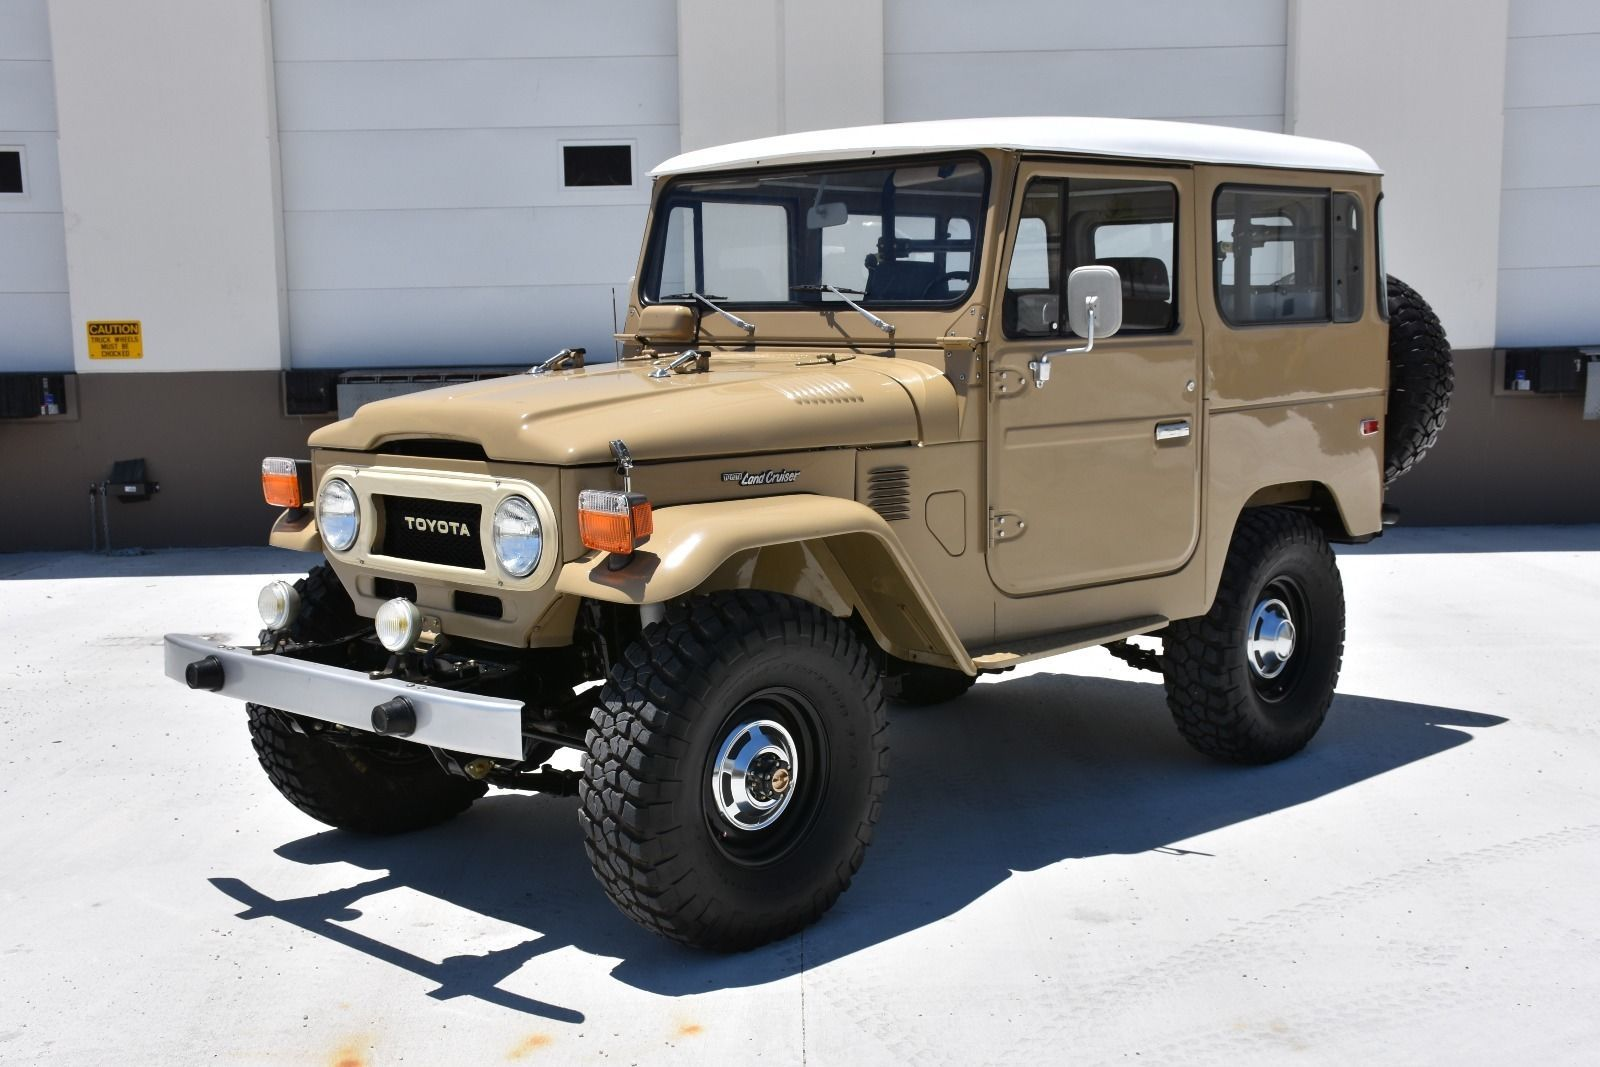 Toyota Land Cruiser Hard Top Ebay Cruisers In 2018 1973 Original